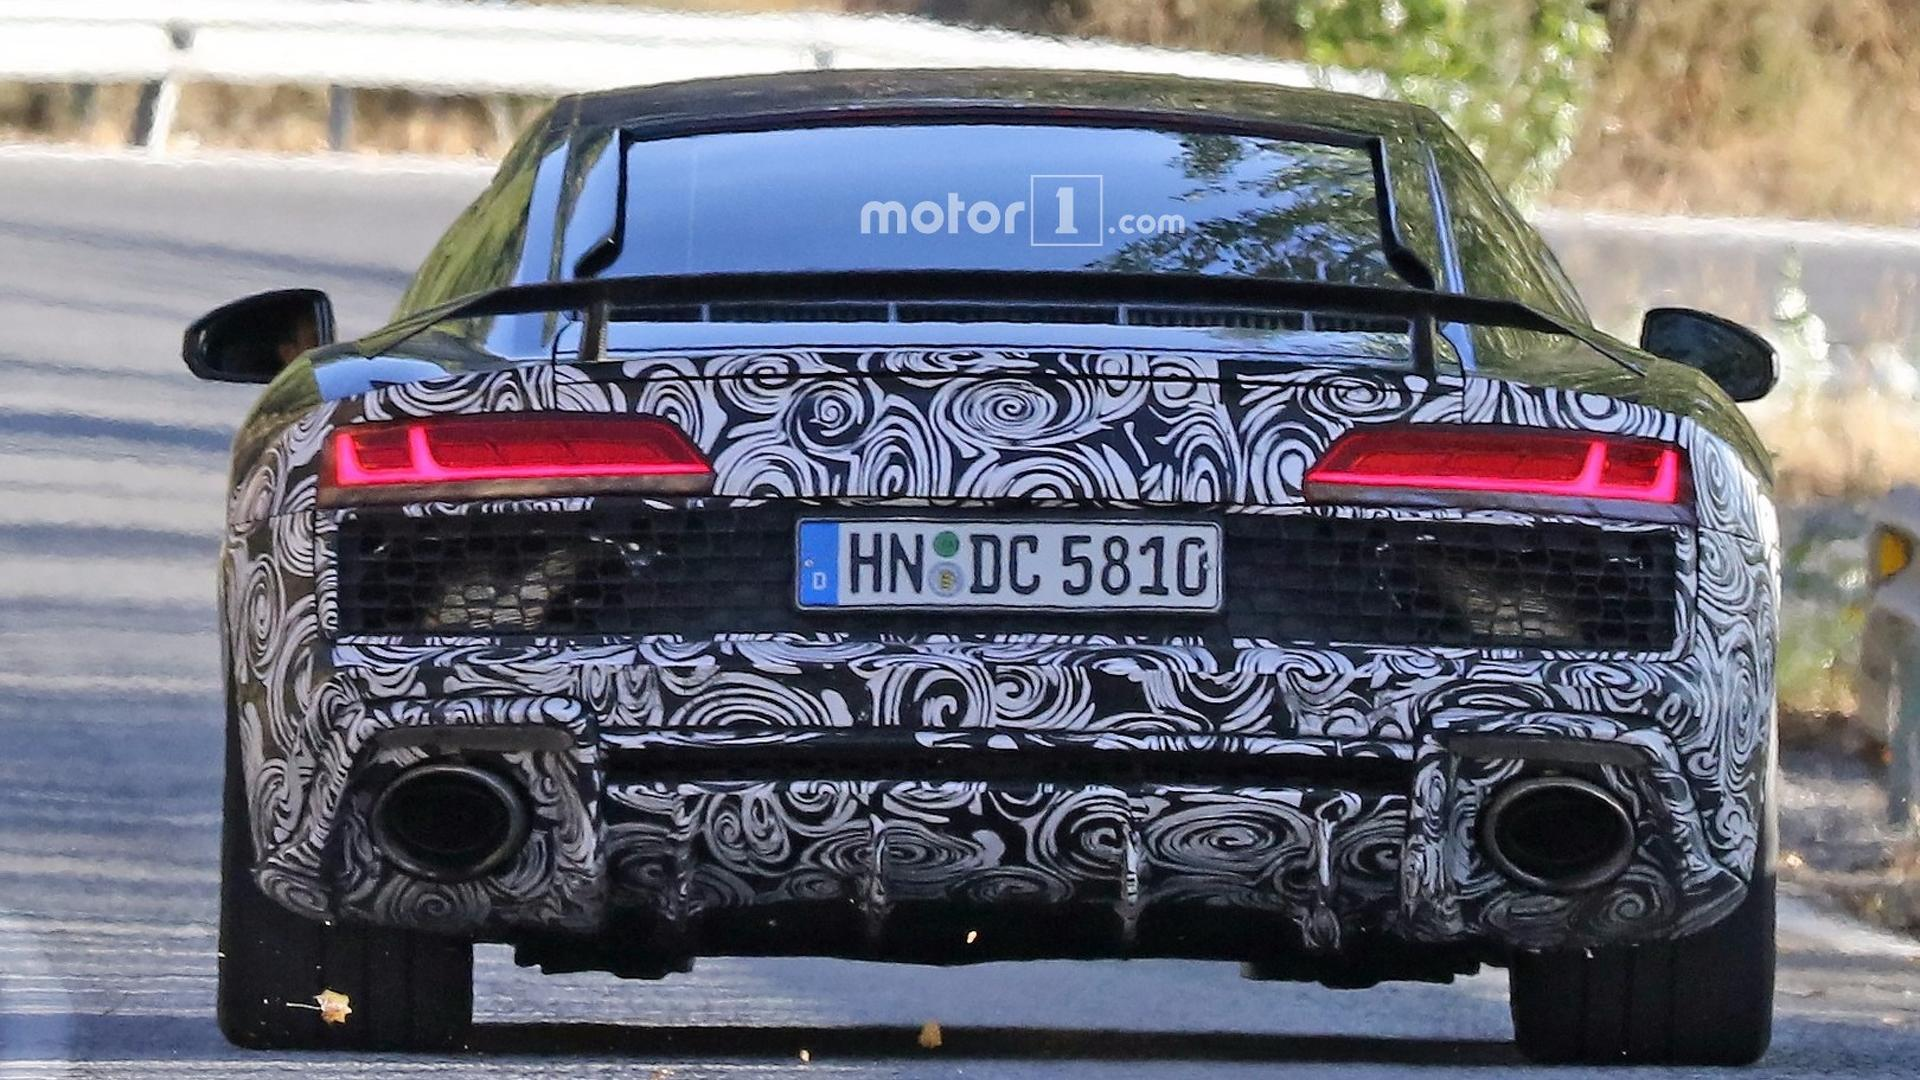 Hardcore Audi R Spied With Massive Oval Exhaust Tips - 2018 audi r8 gt